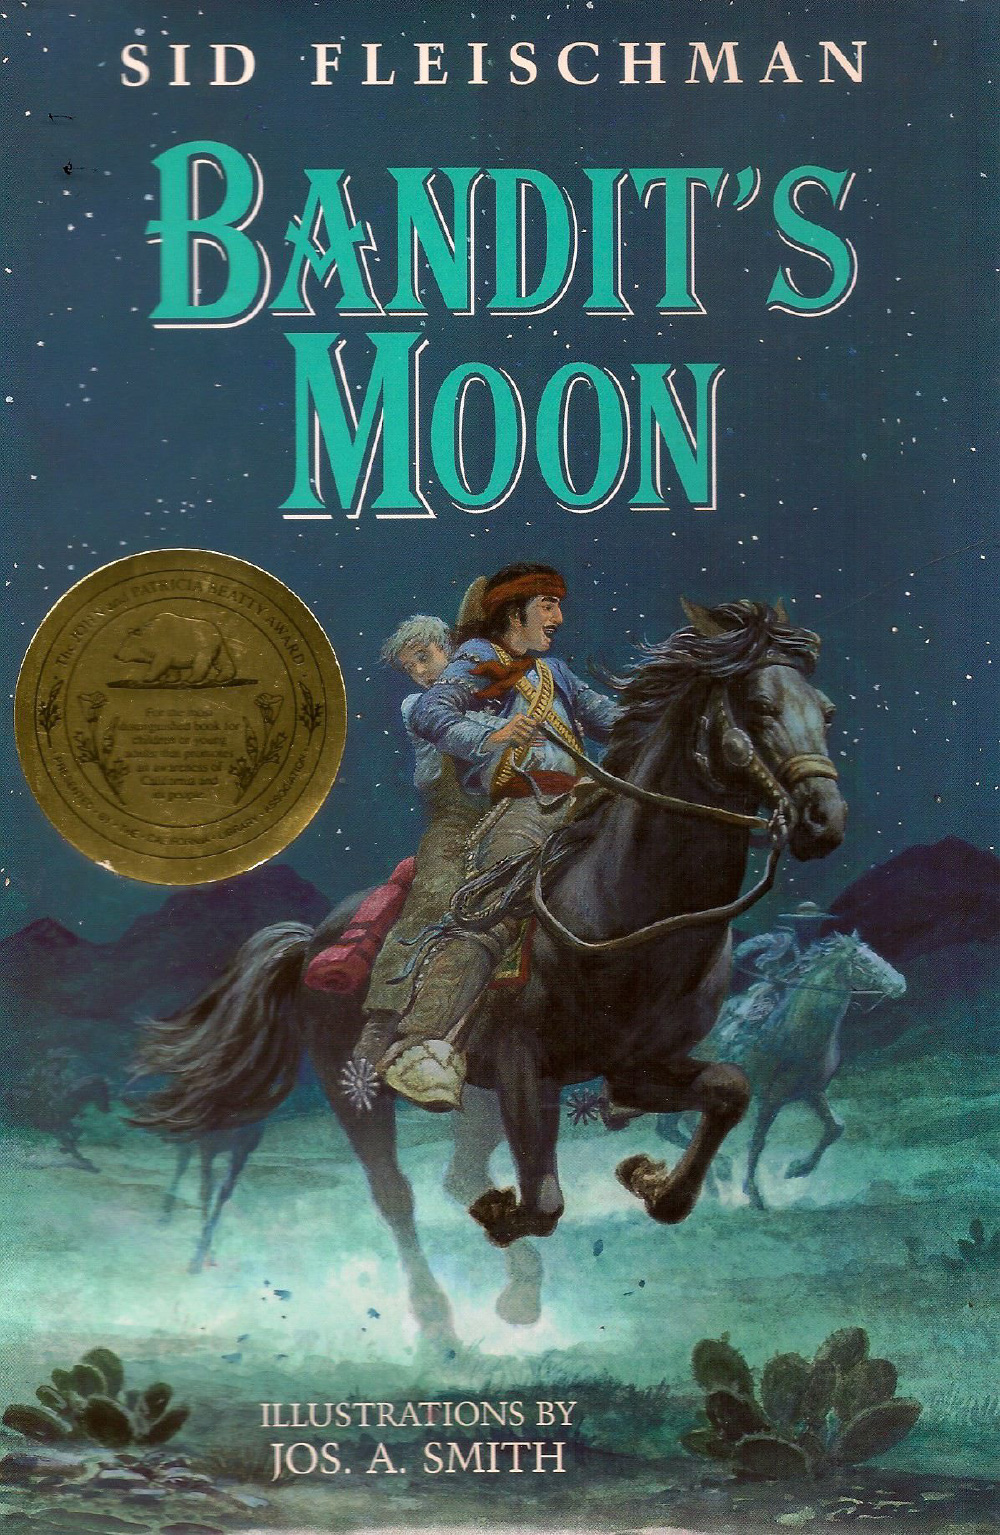 Bandit's Moon - Illustrated by Jos. A. Smith